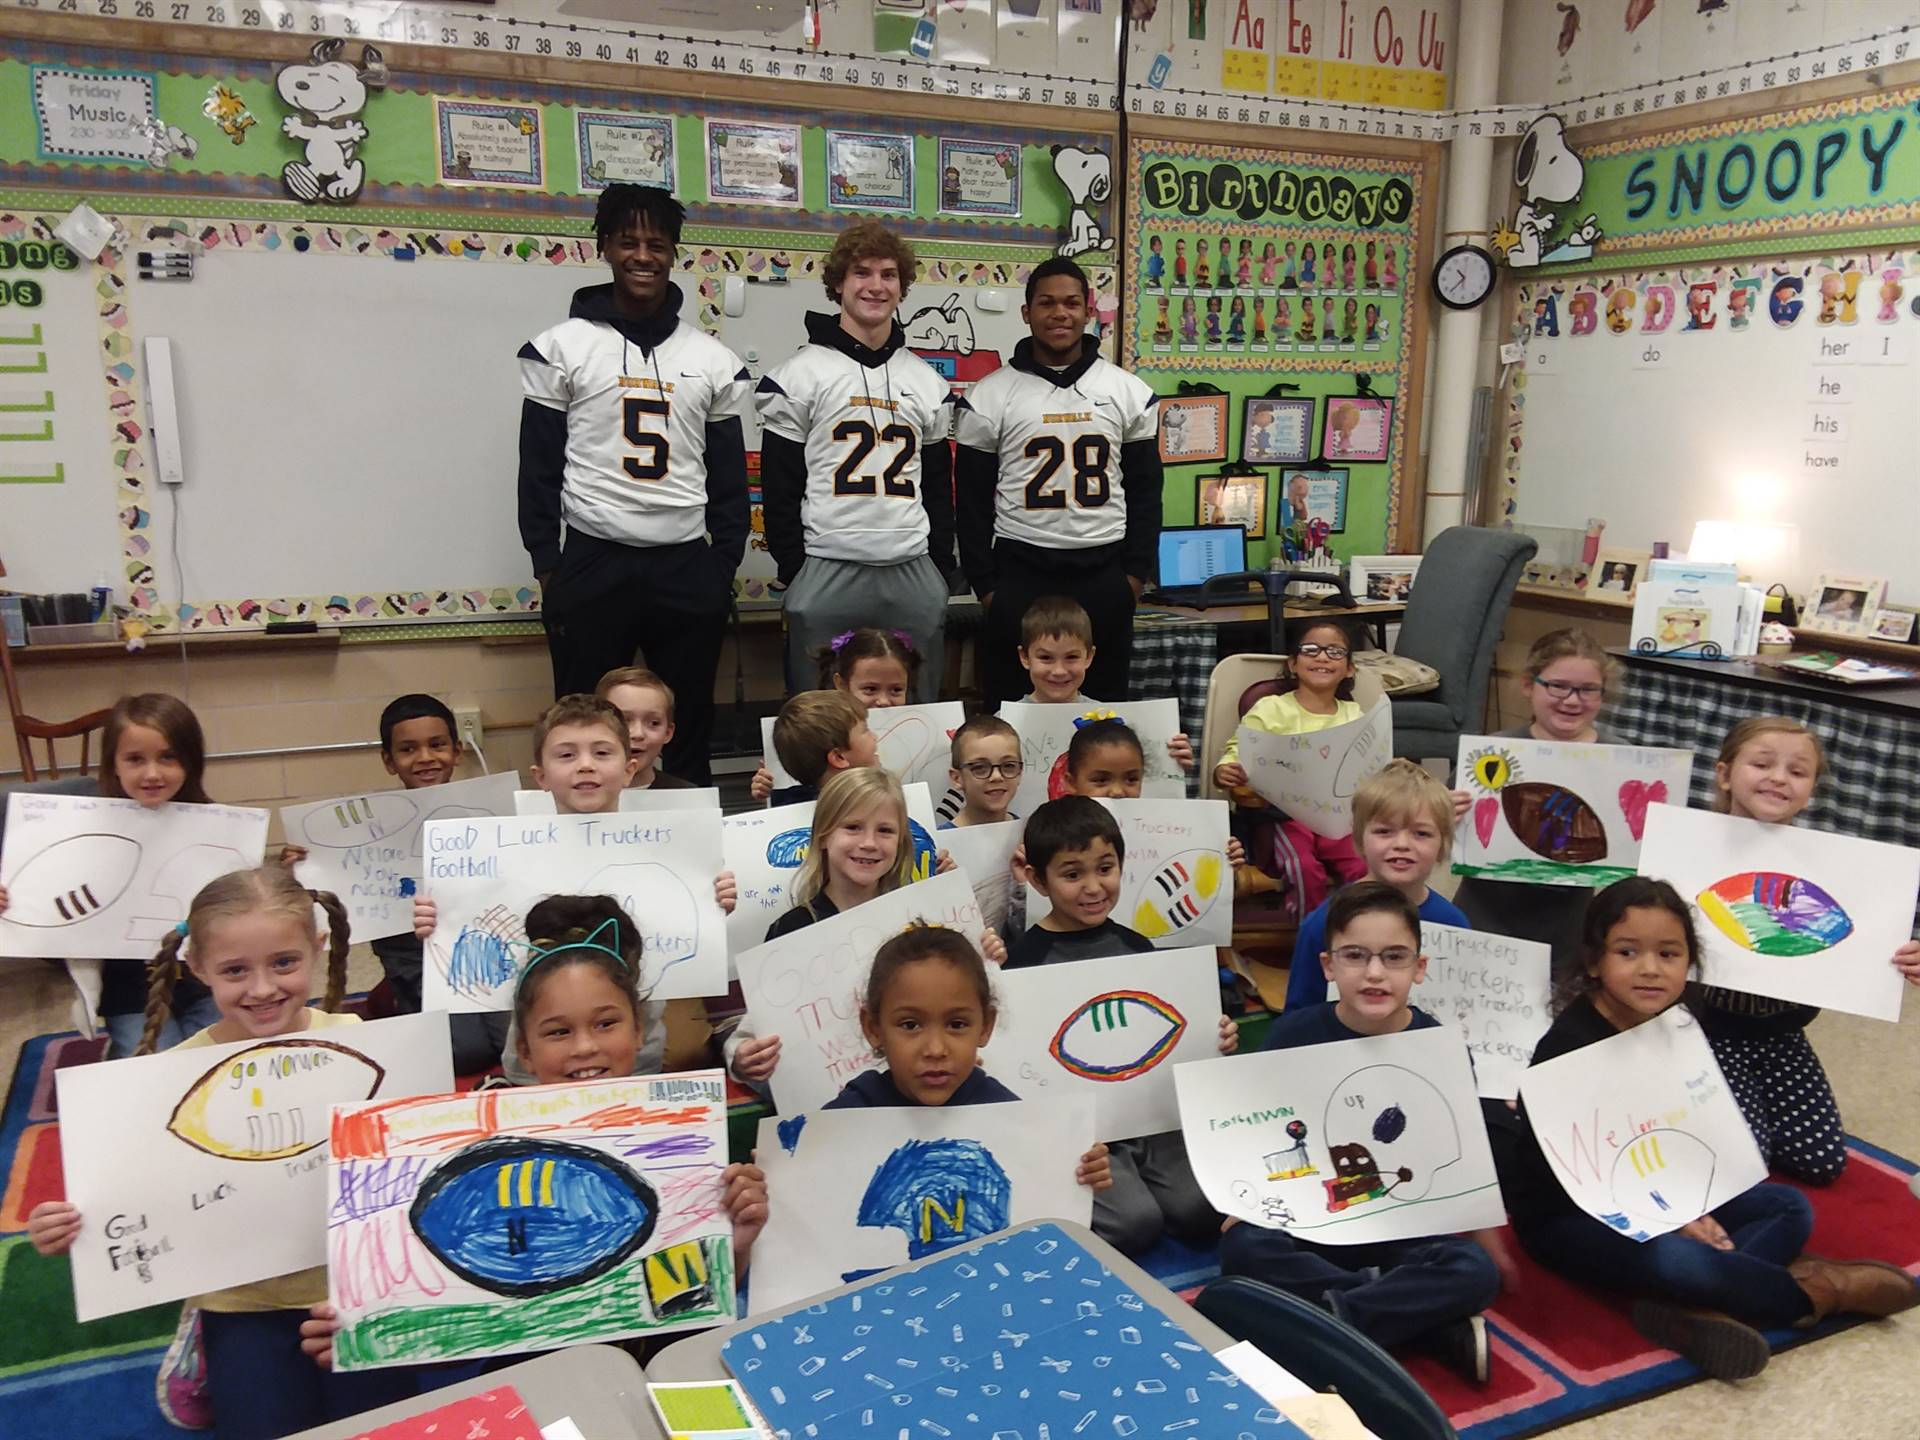 Football players visited students